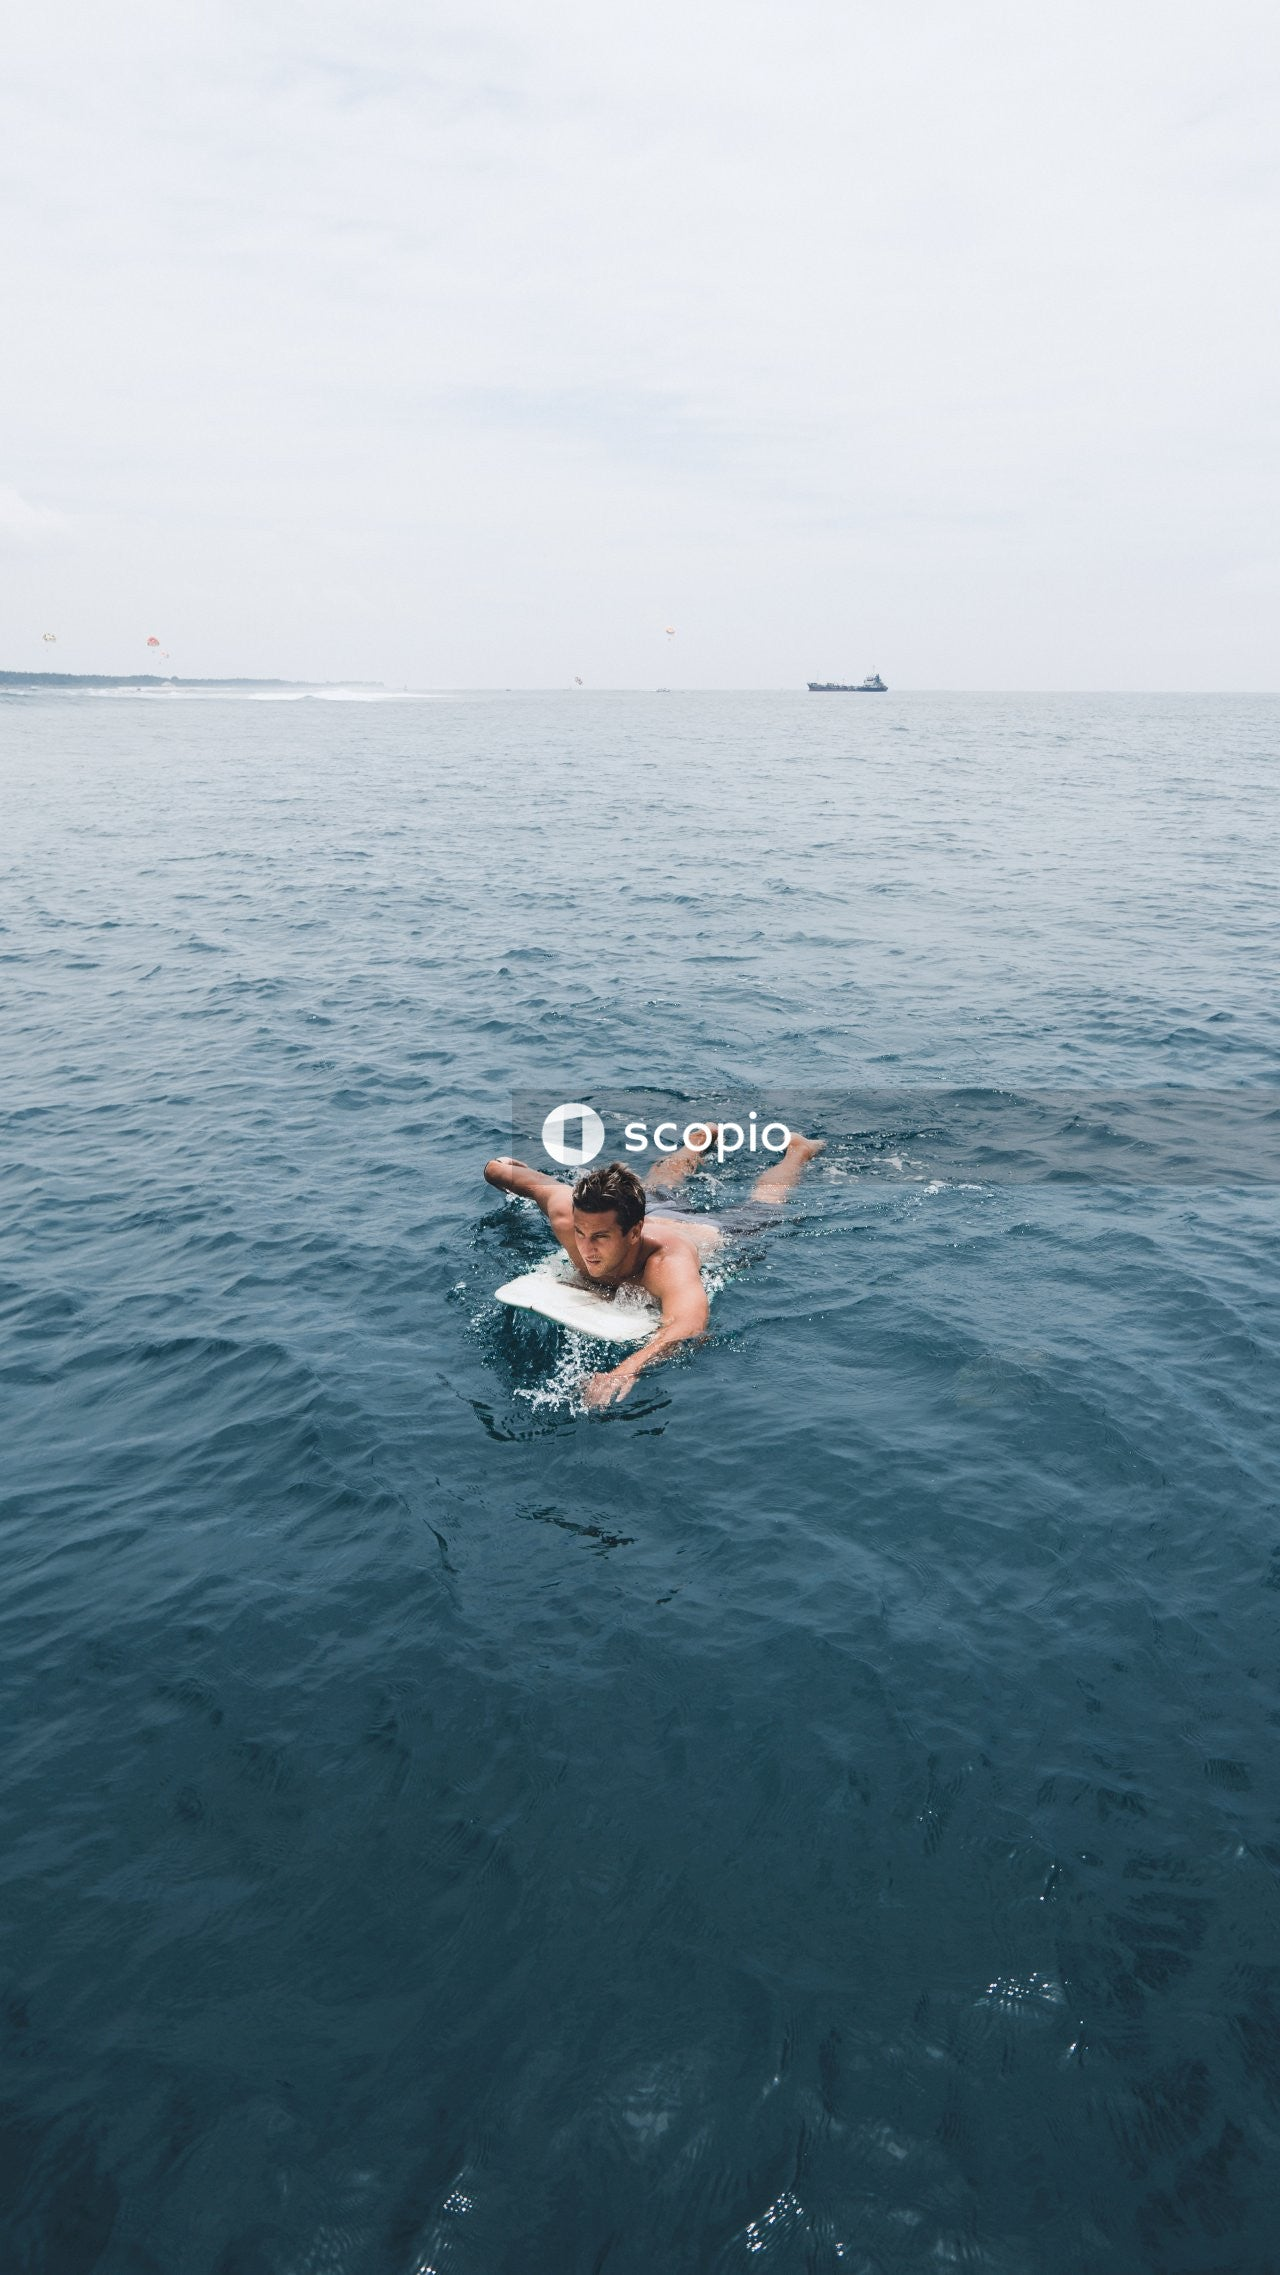 Man on surfboard in sea